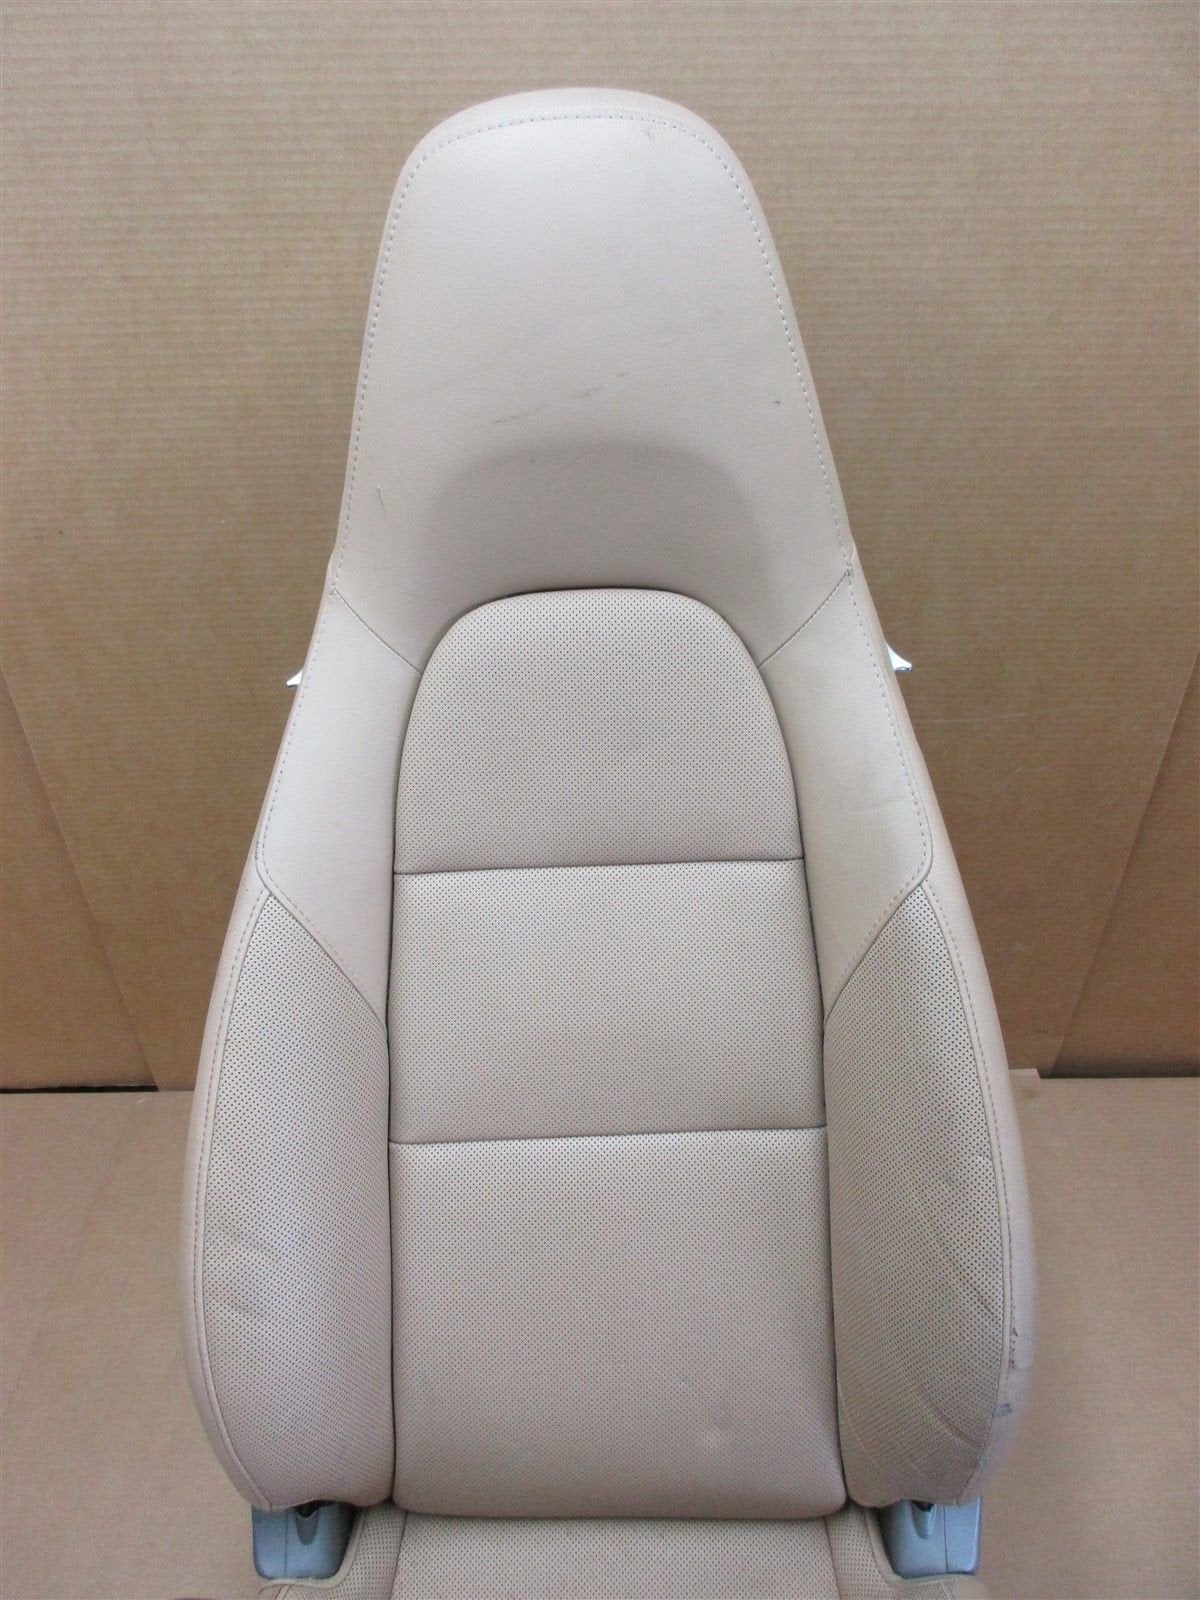 13 Carrera 911 RWD Porsche 991 Cabrio L FRONT 4-WAY Beige Leather SEAT 33,116